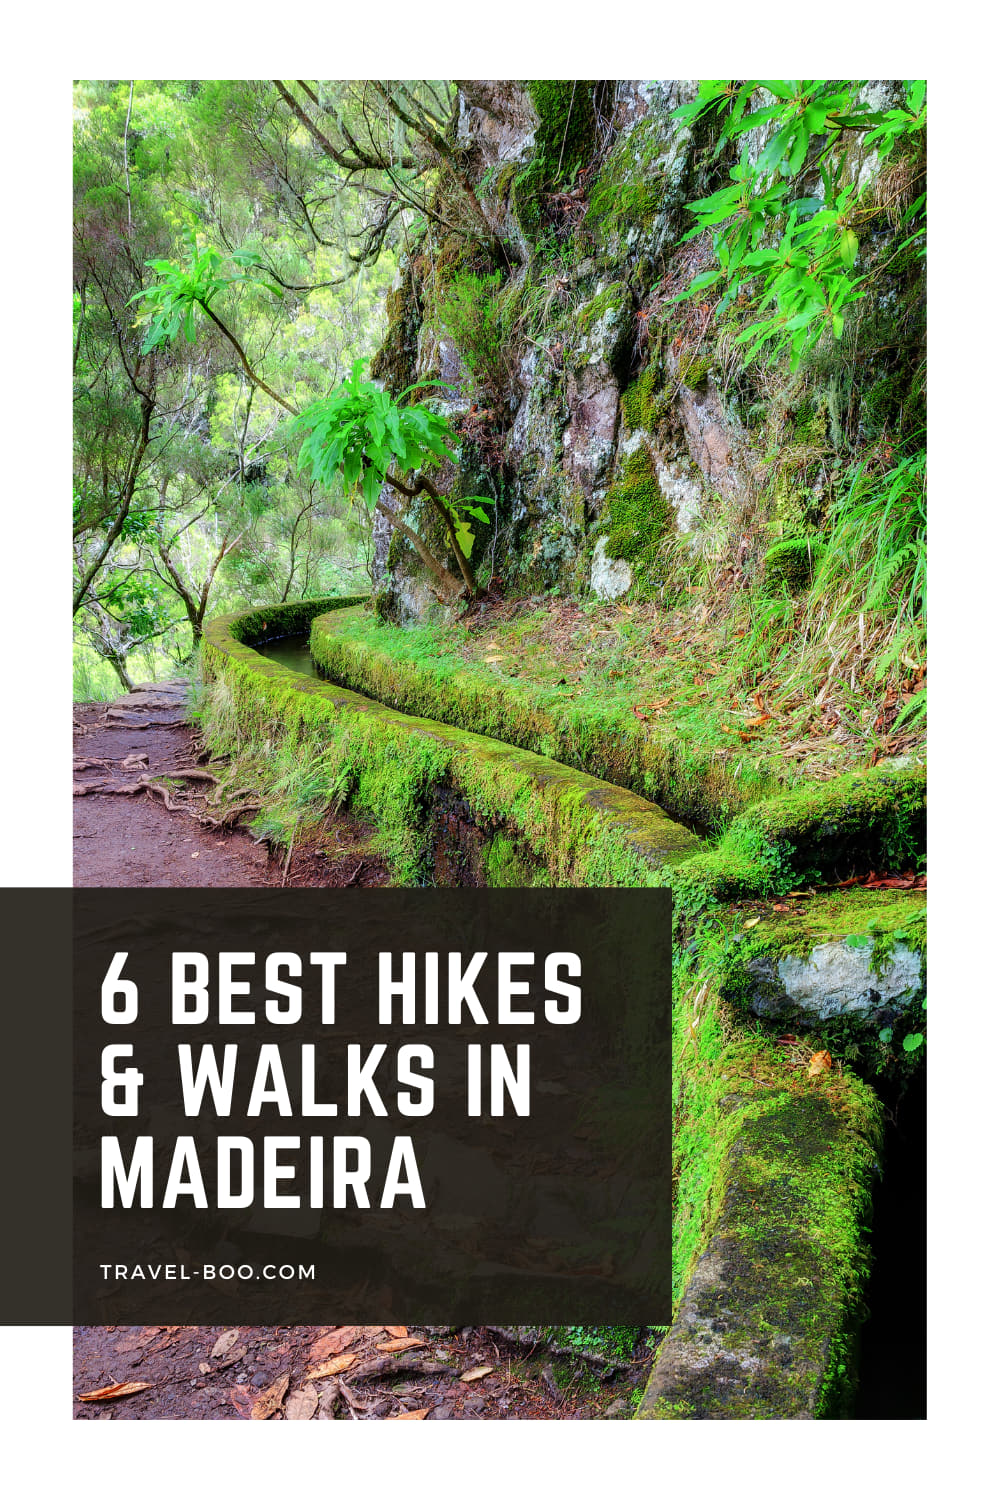 6 Best and Most Beautiful Walks & Hikes in Madeira, Portugal, Worth Discovering! Portugal Travel, Madeira Portugal, Madeira Travel Itinerary, Madeira Travel, Madeira Hikes, Hikes in Madeira, Portugal Hikes, Best Hikes in Portugal